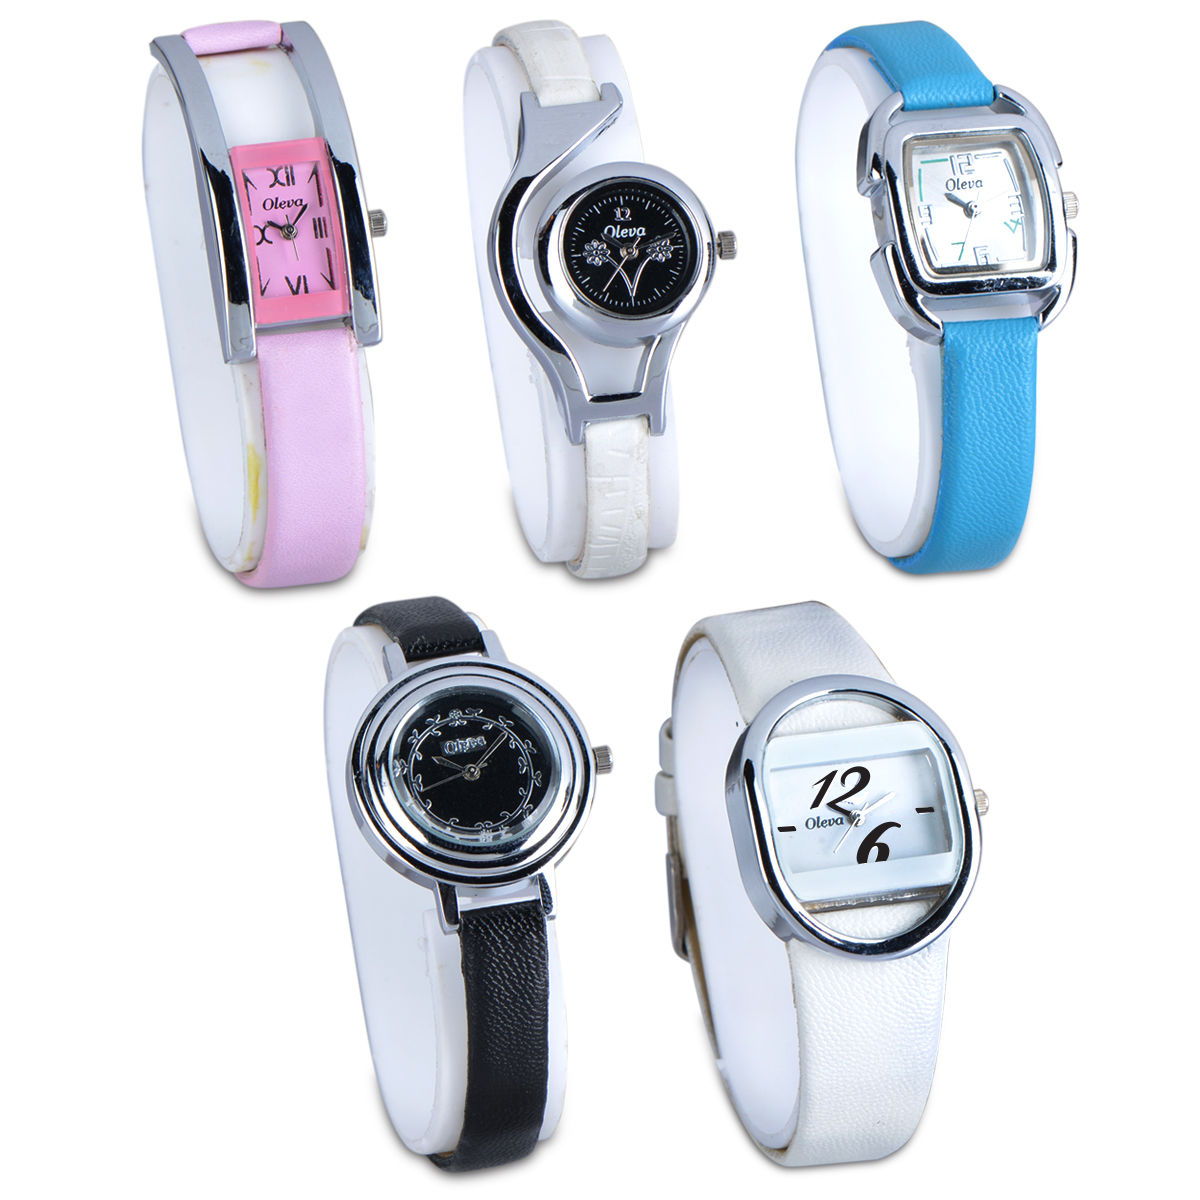 53e4516680 Buy Set of 5 Ladies Watch Combo Online at Best Price in India on Naaptol.com